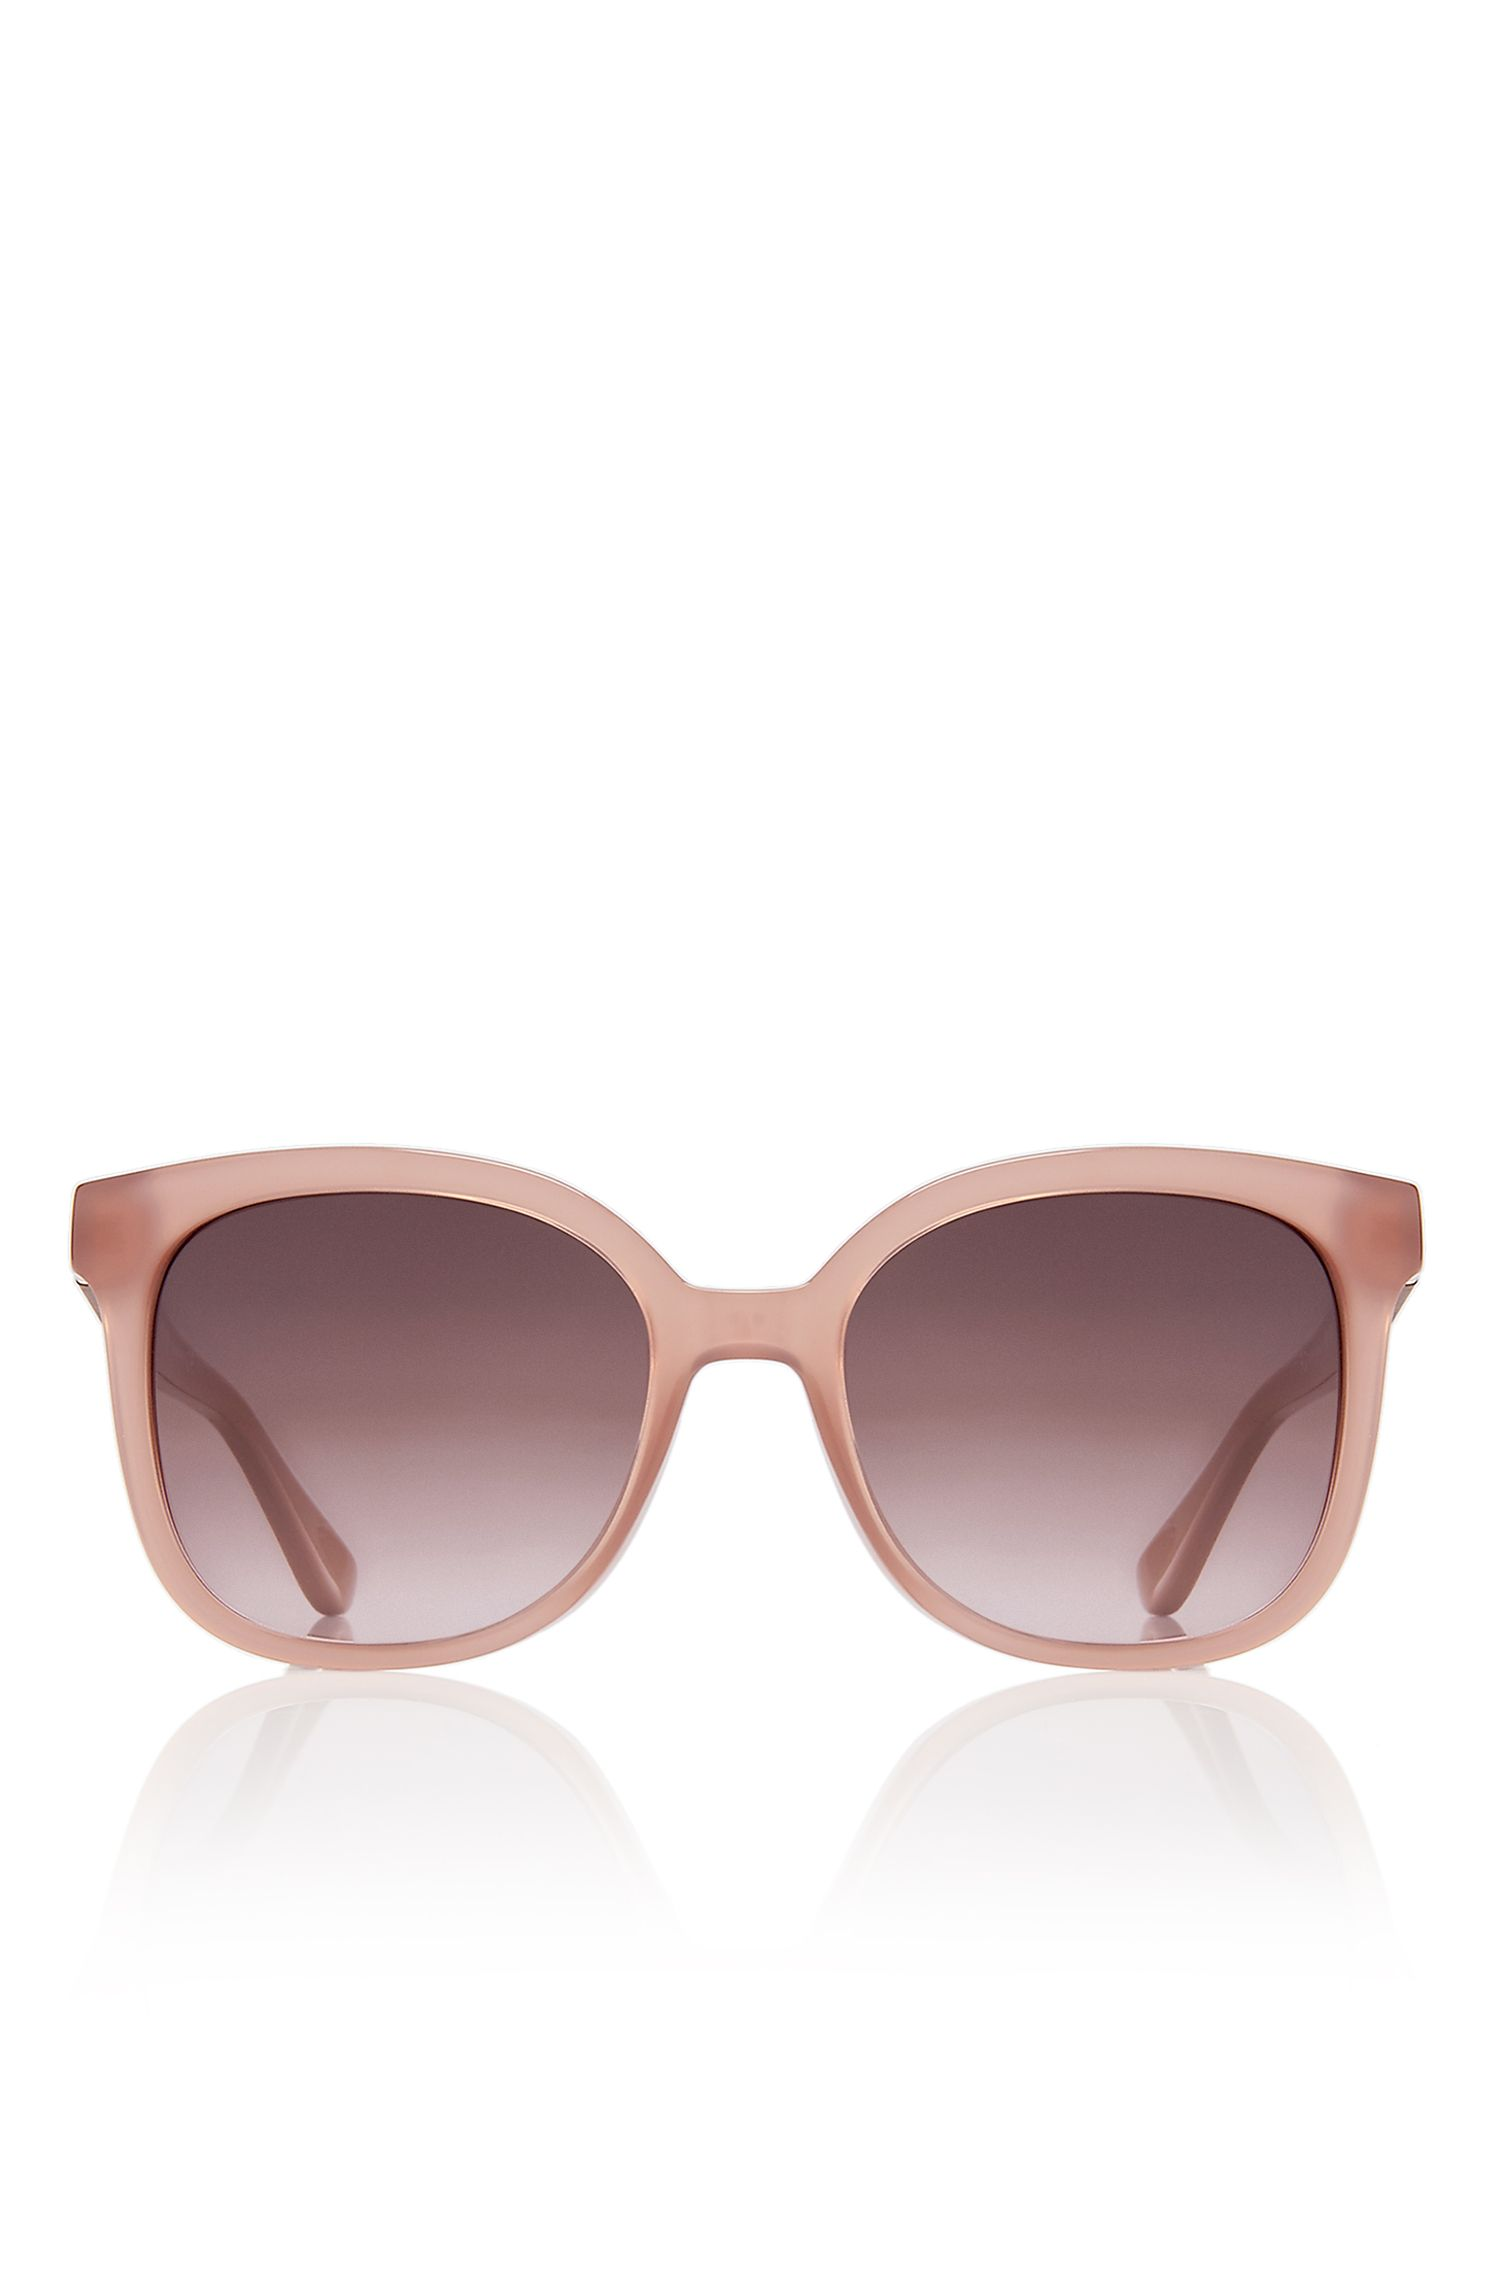 Rectangular Wood Pattern Sunglasses  | BOSS 0663S